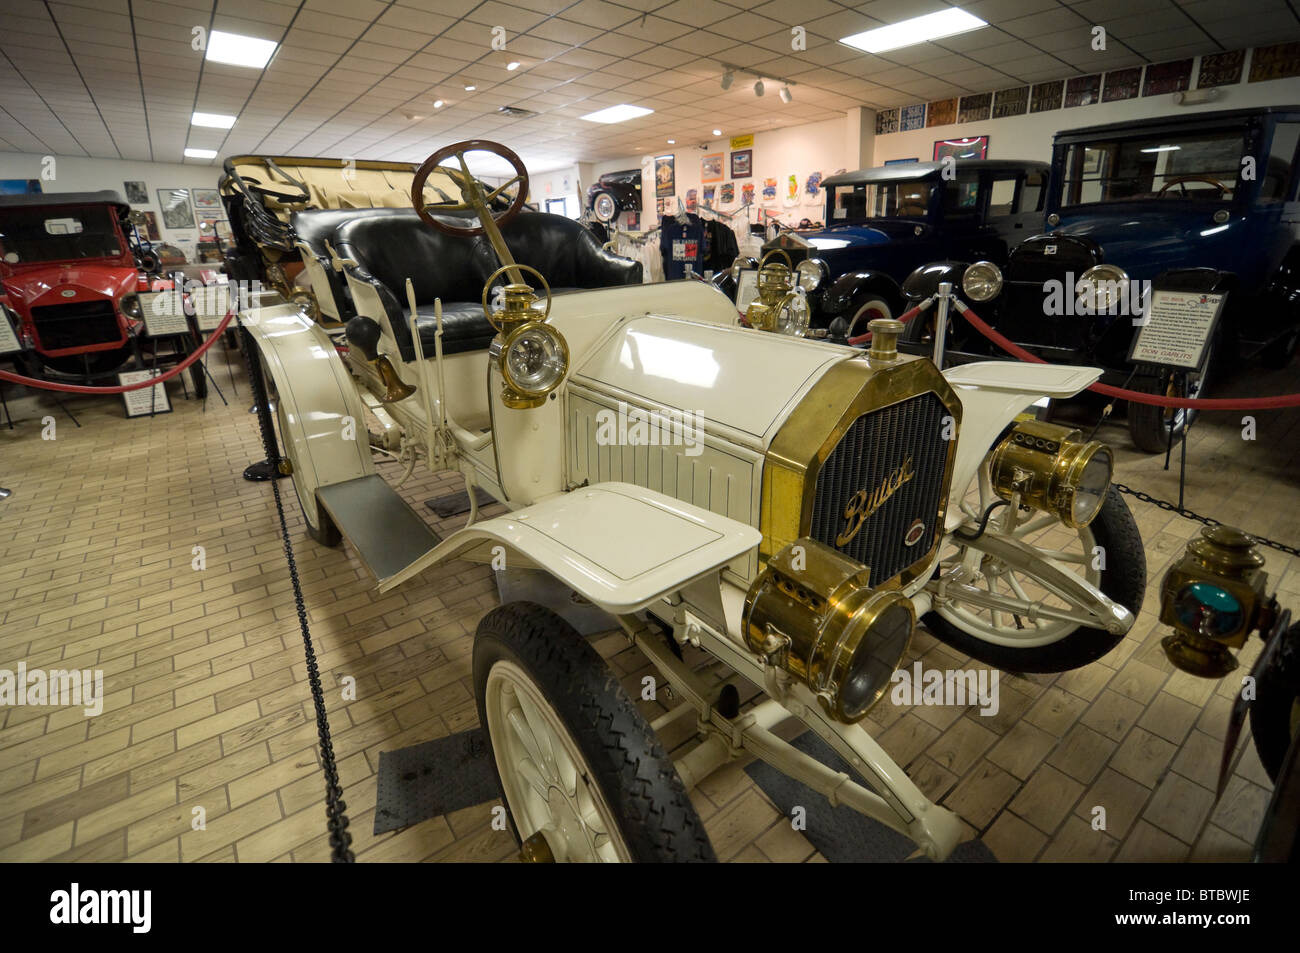 Don Garlits Museum of Classic Automobiles Ocala Florida vintage Buick automobile - Stock Image